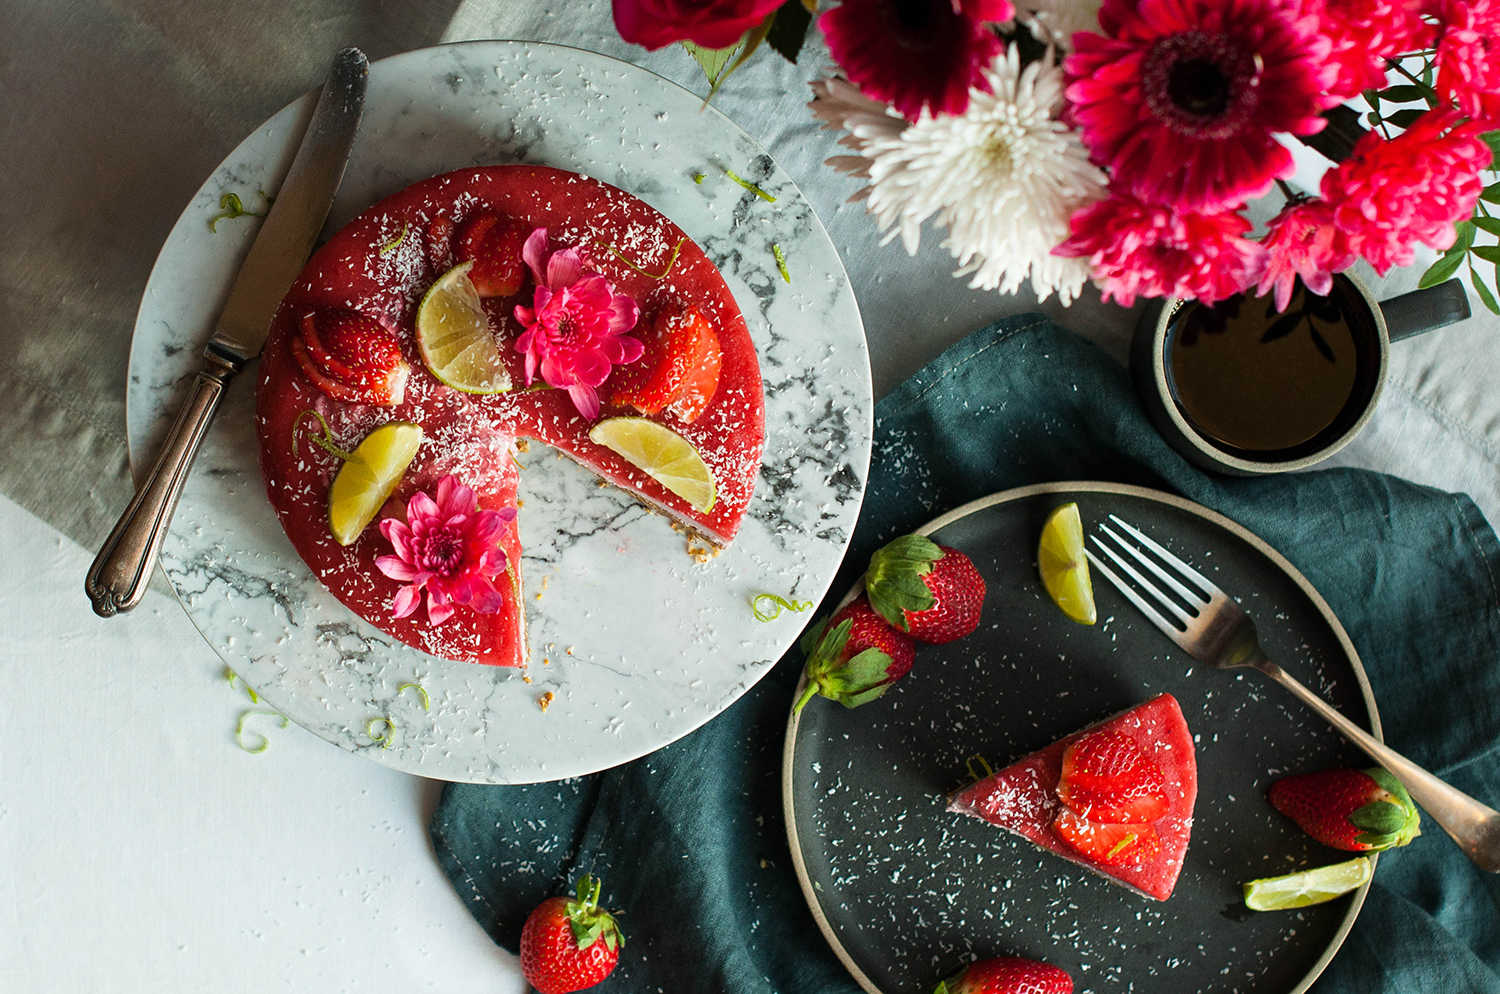 Glutenfree-raw-vegan-strawberry-lime-tart-lea-lou-7